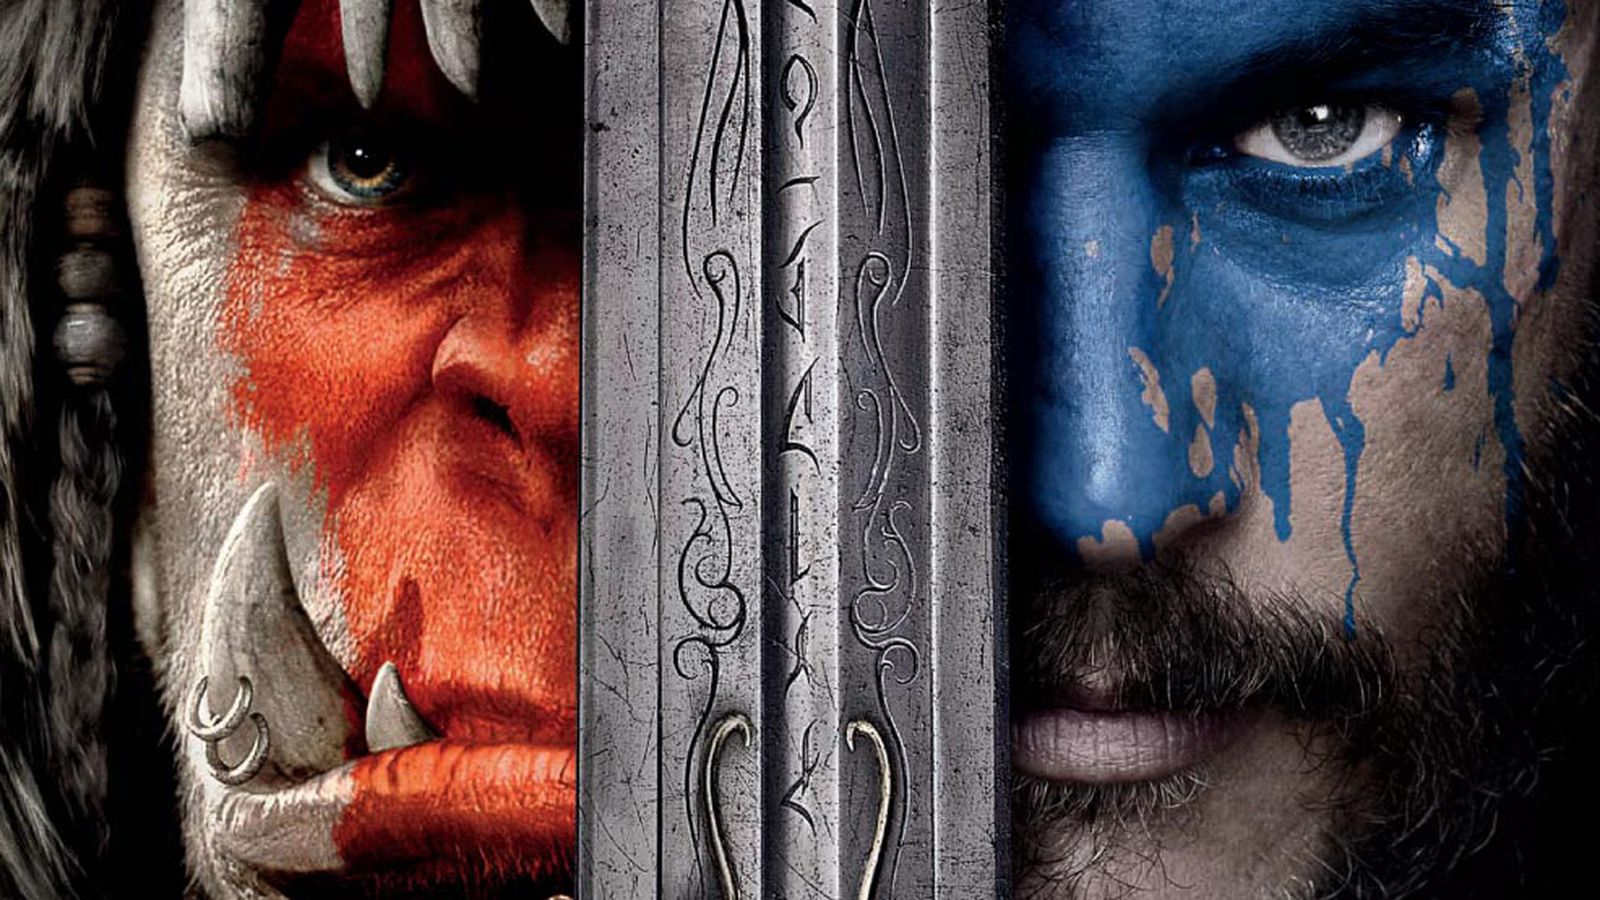 warcraft movie poster full 987.0.0